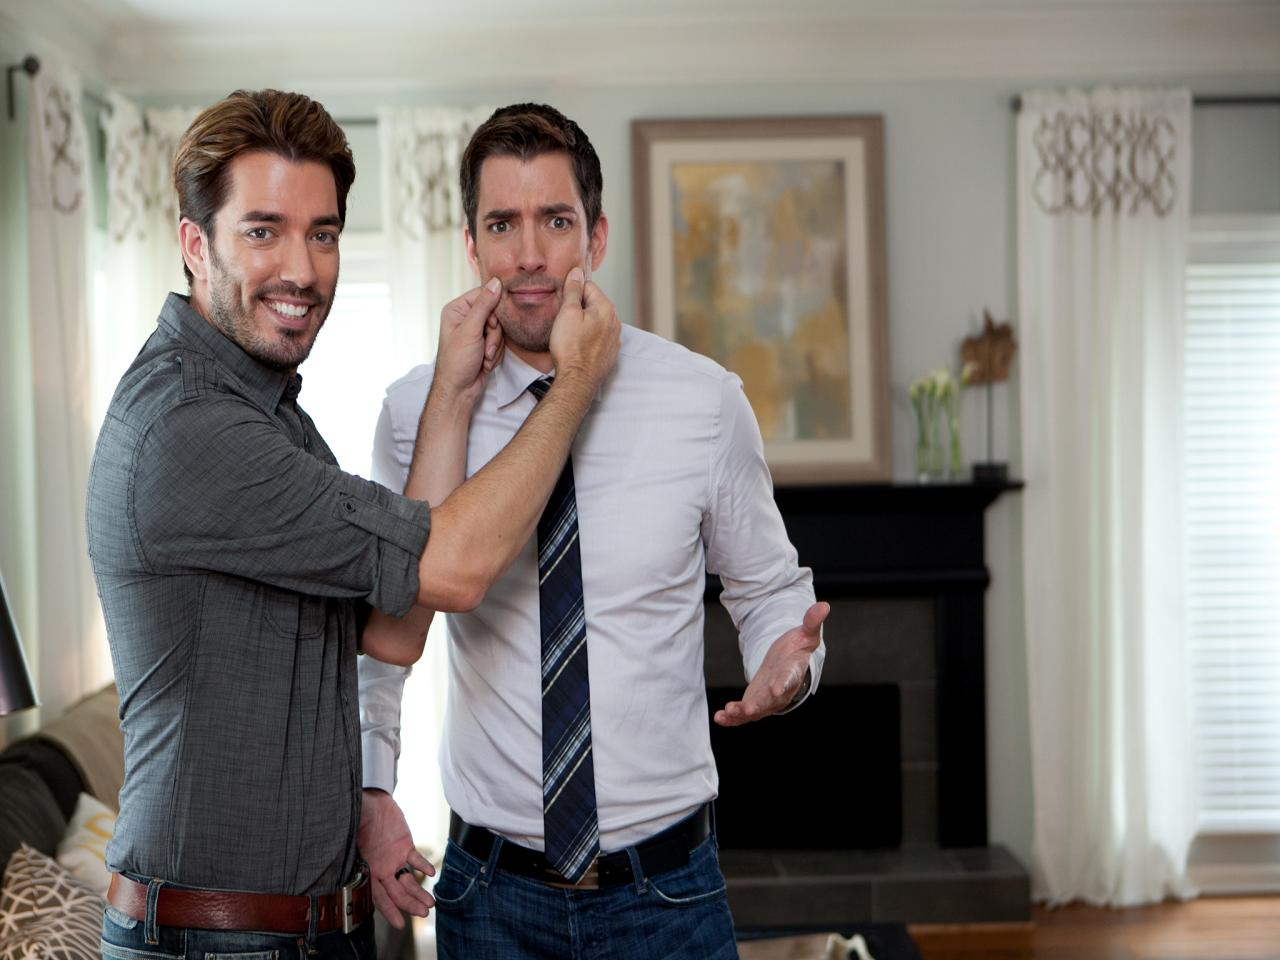 Hgtv S Property Brothers Coming To Dunwoody Mjcca April 13